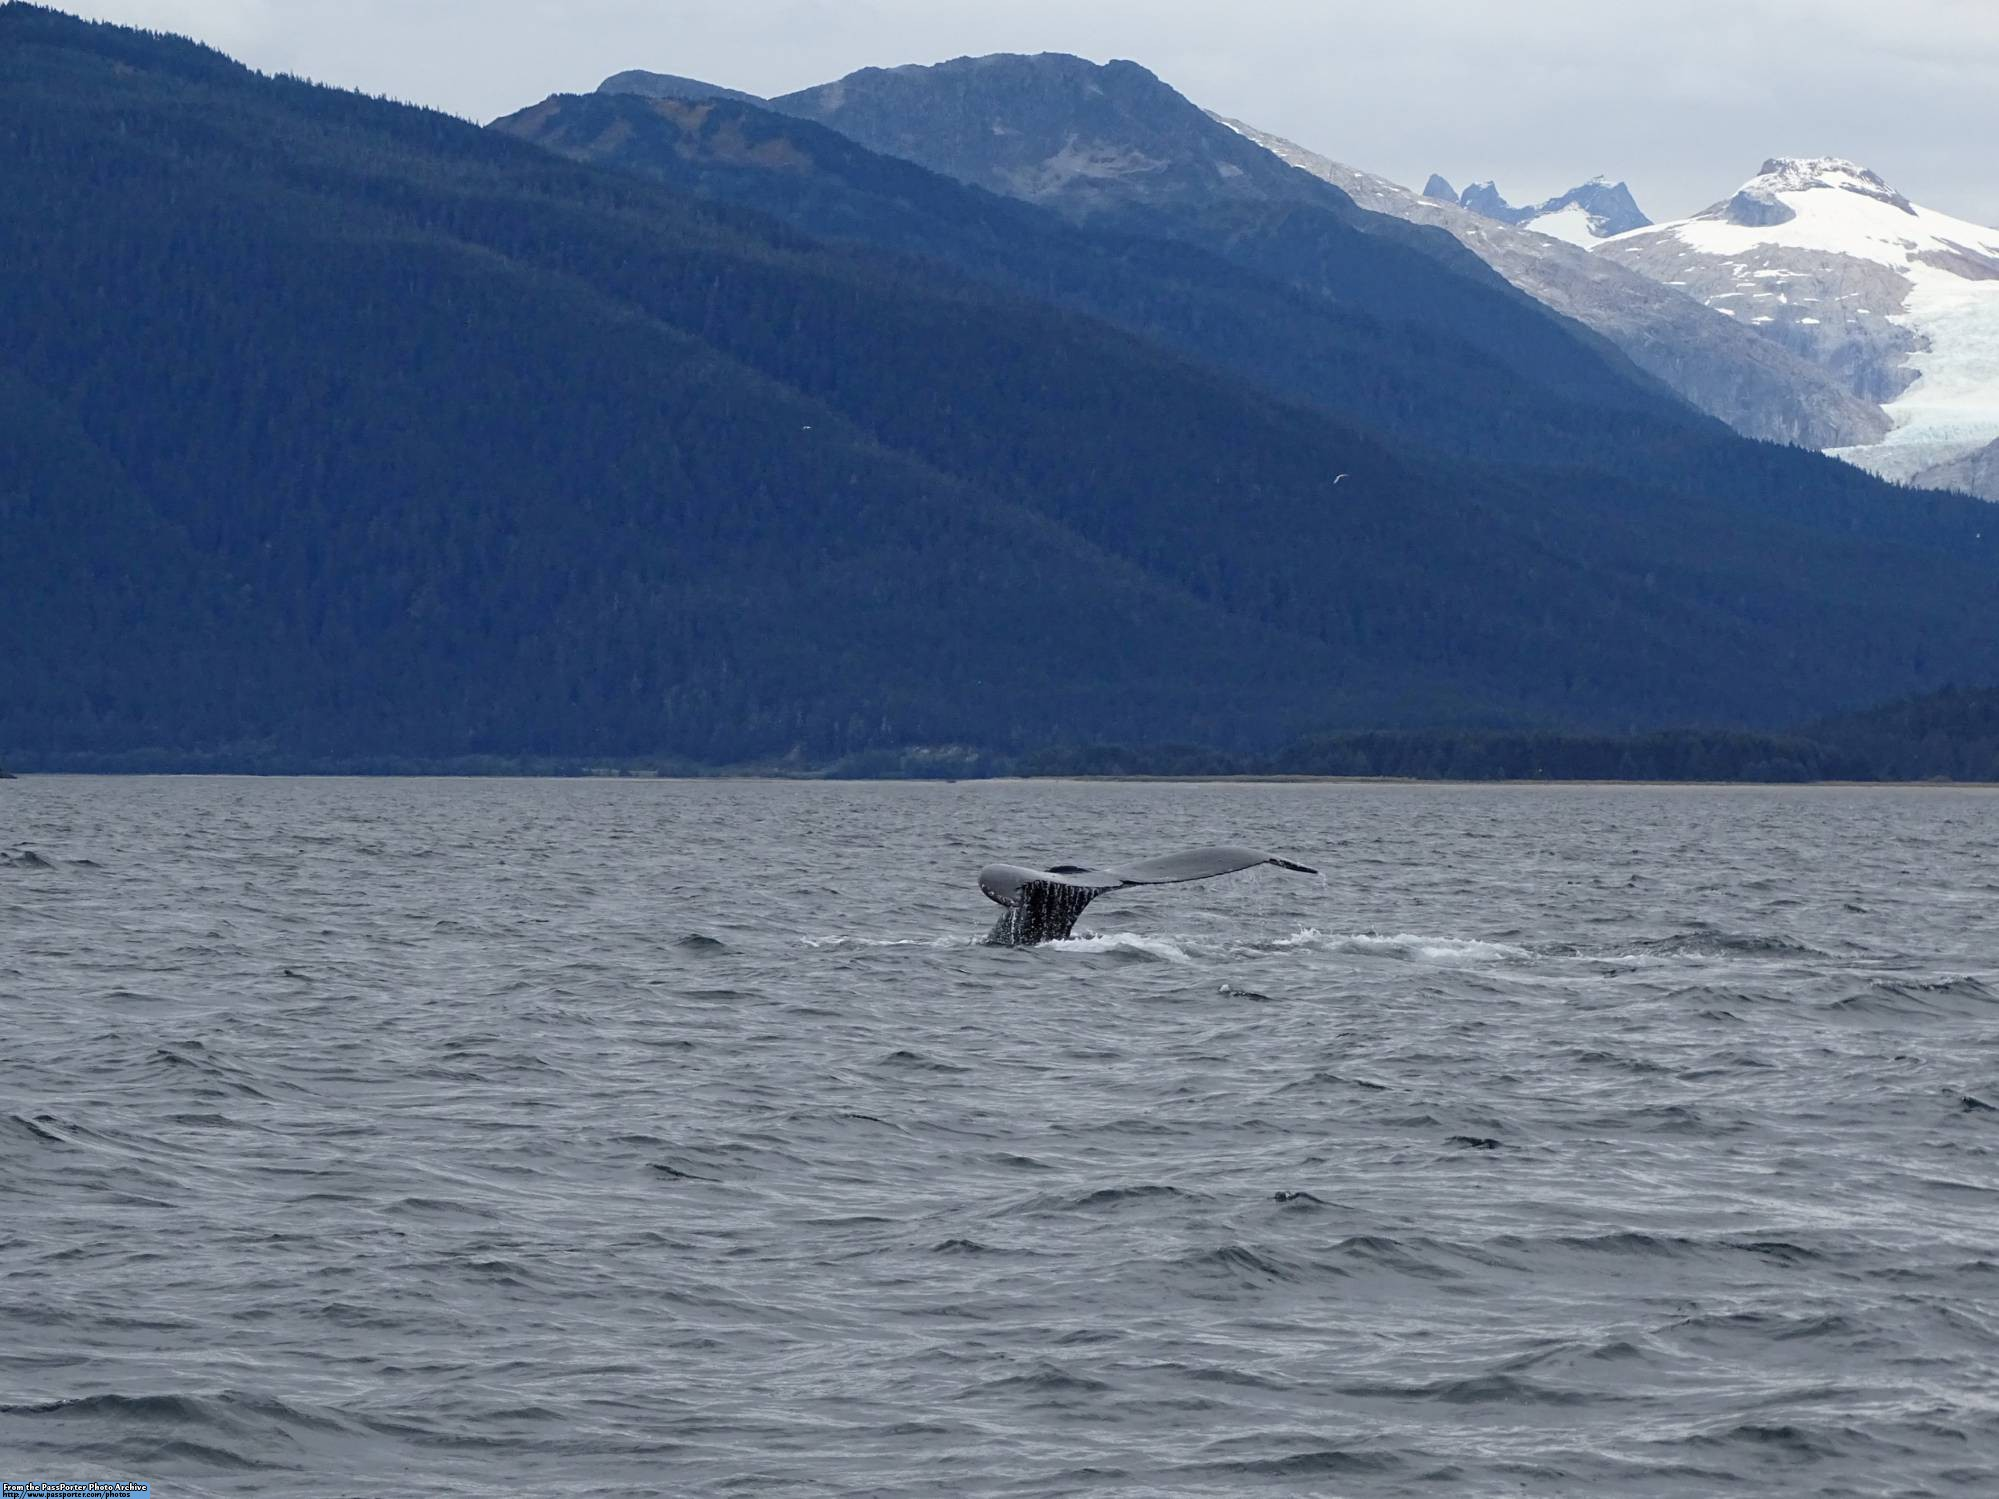 Enjoy the Whales and Glaciers Photo Safari in Juneau while on your Disney Cruise to Alaska | PassPorter.com